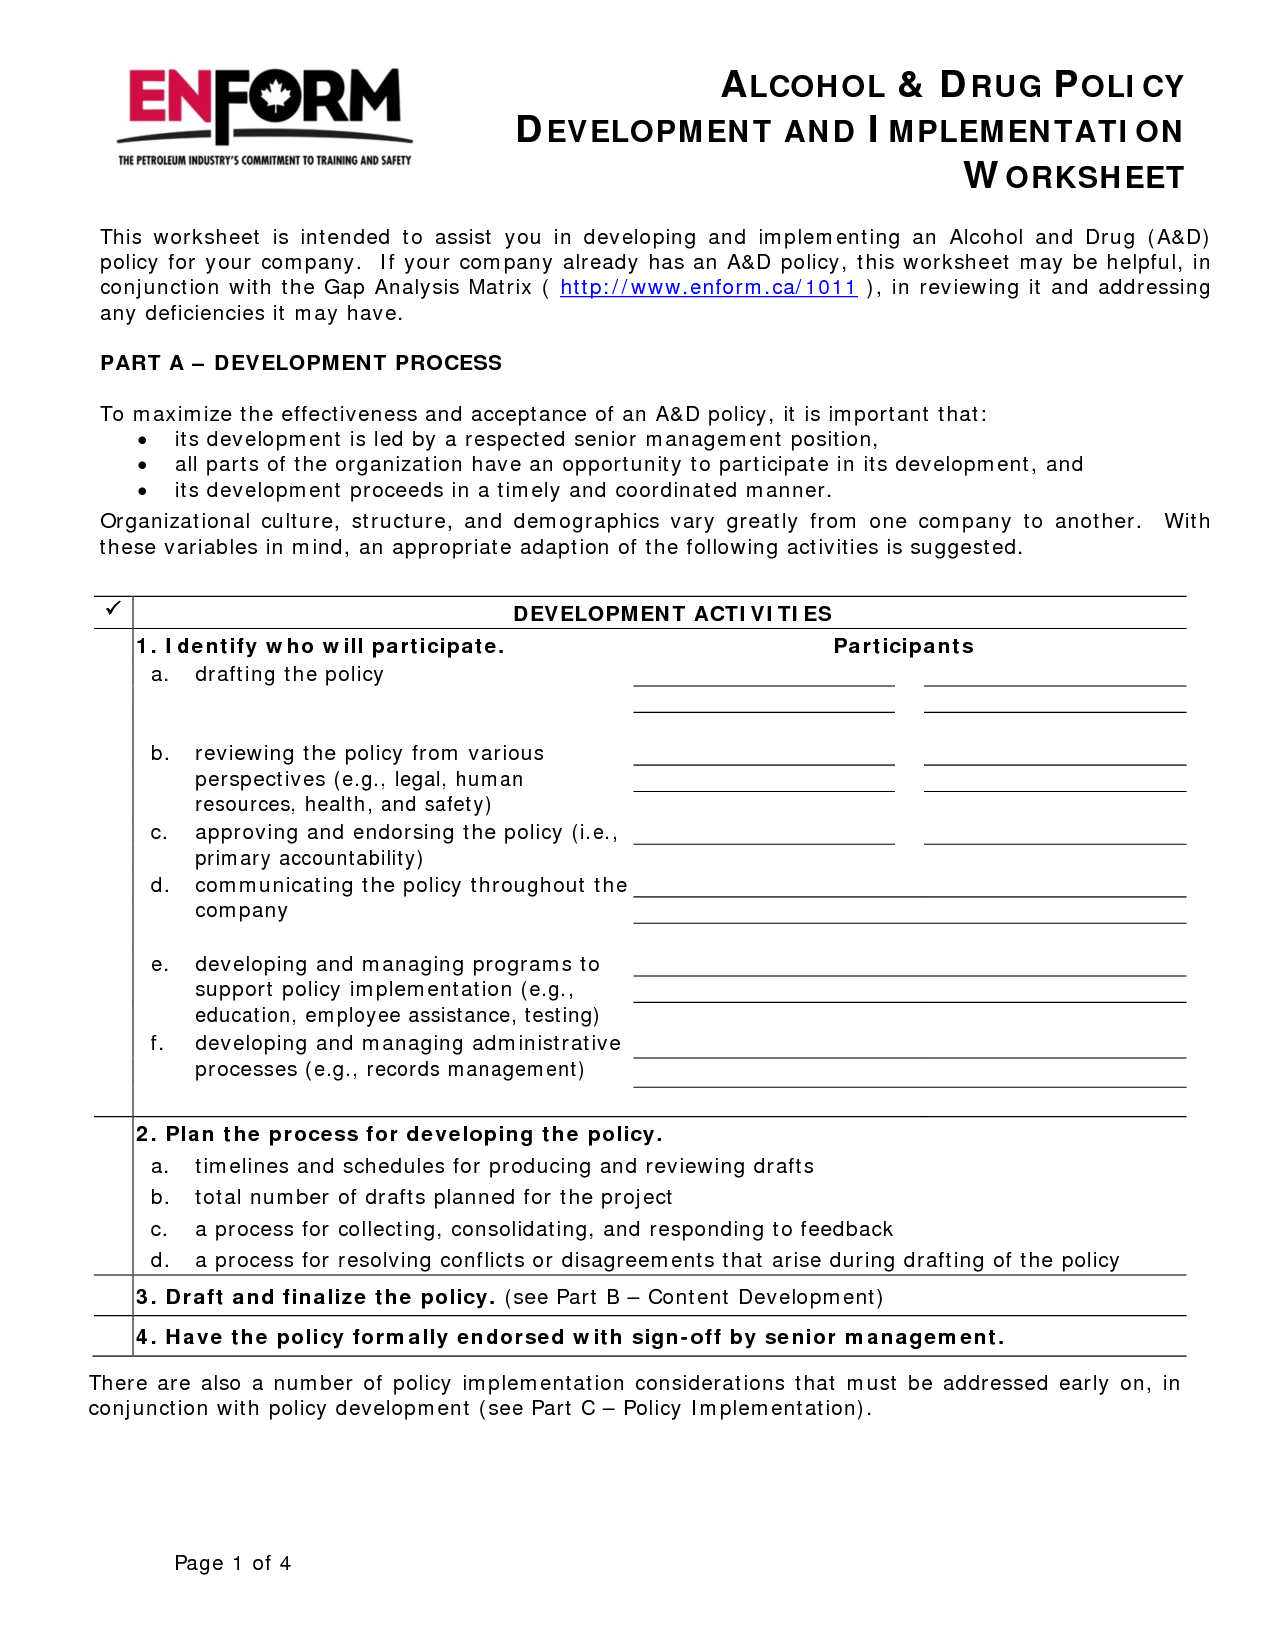 15 Best Images Of Worksheet For Alcohol And Drug Awareness